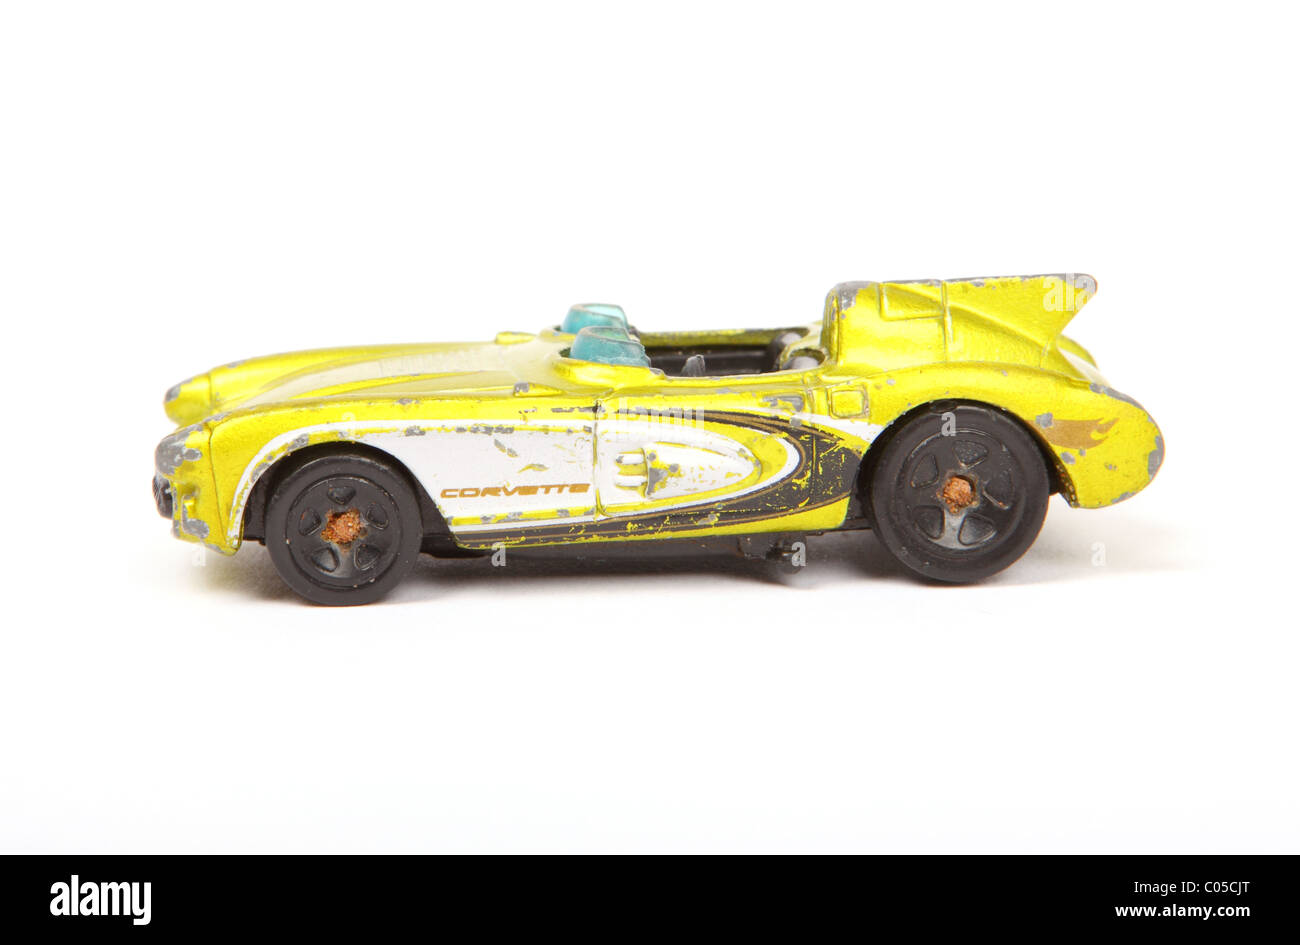 Old damaged toy Corvette car made by Mattel Hotwheels Stock Photo